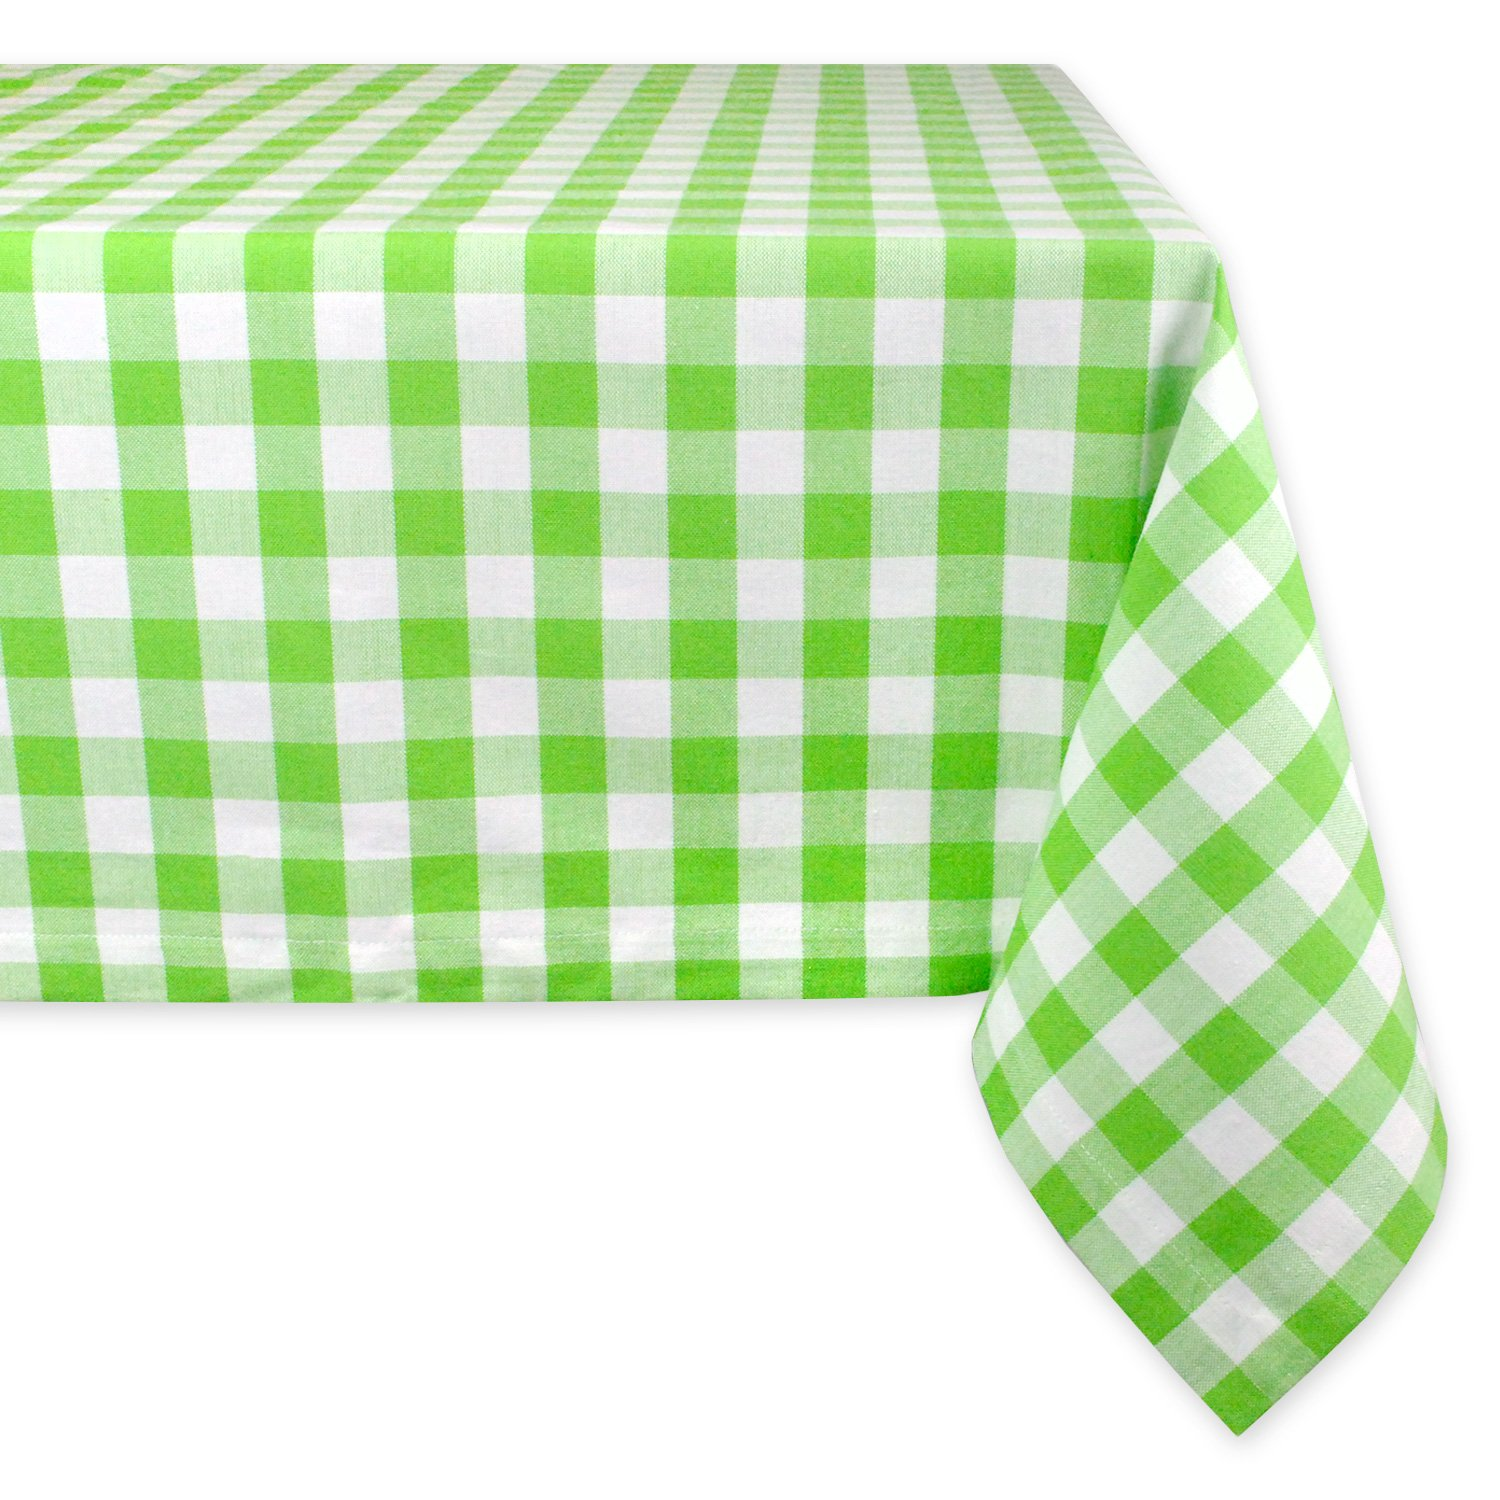 Seats 8 to 10 People 60 x 104 CAMZ36878 Summer /& Picnic Tablecloth Machine Washable Aqua /& White Check 60 x 104 DII 100/% Cotton Dinner